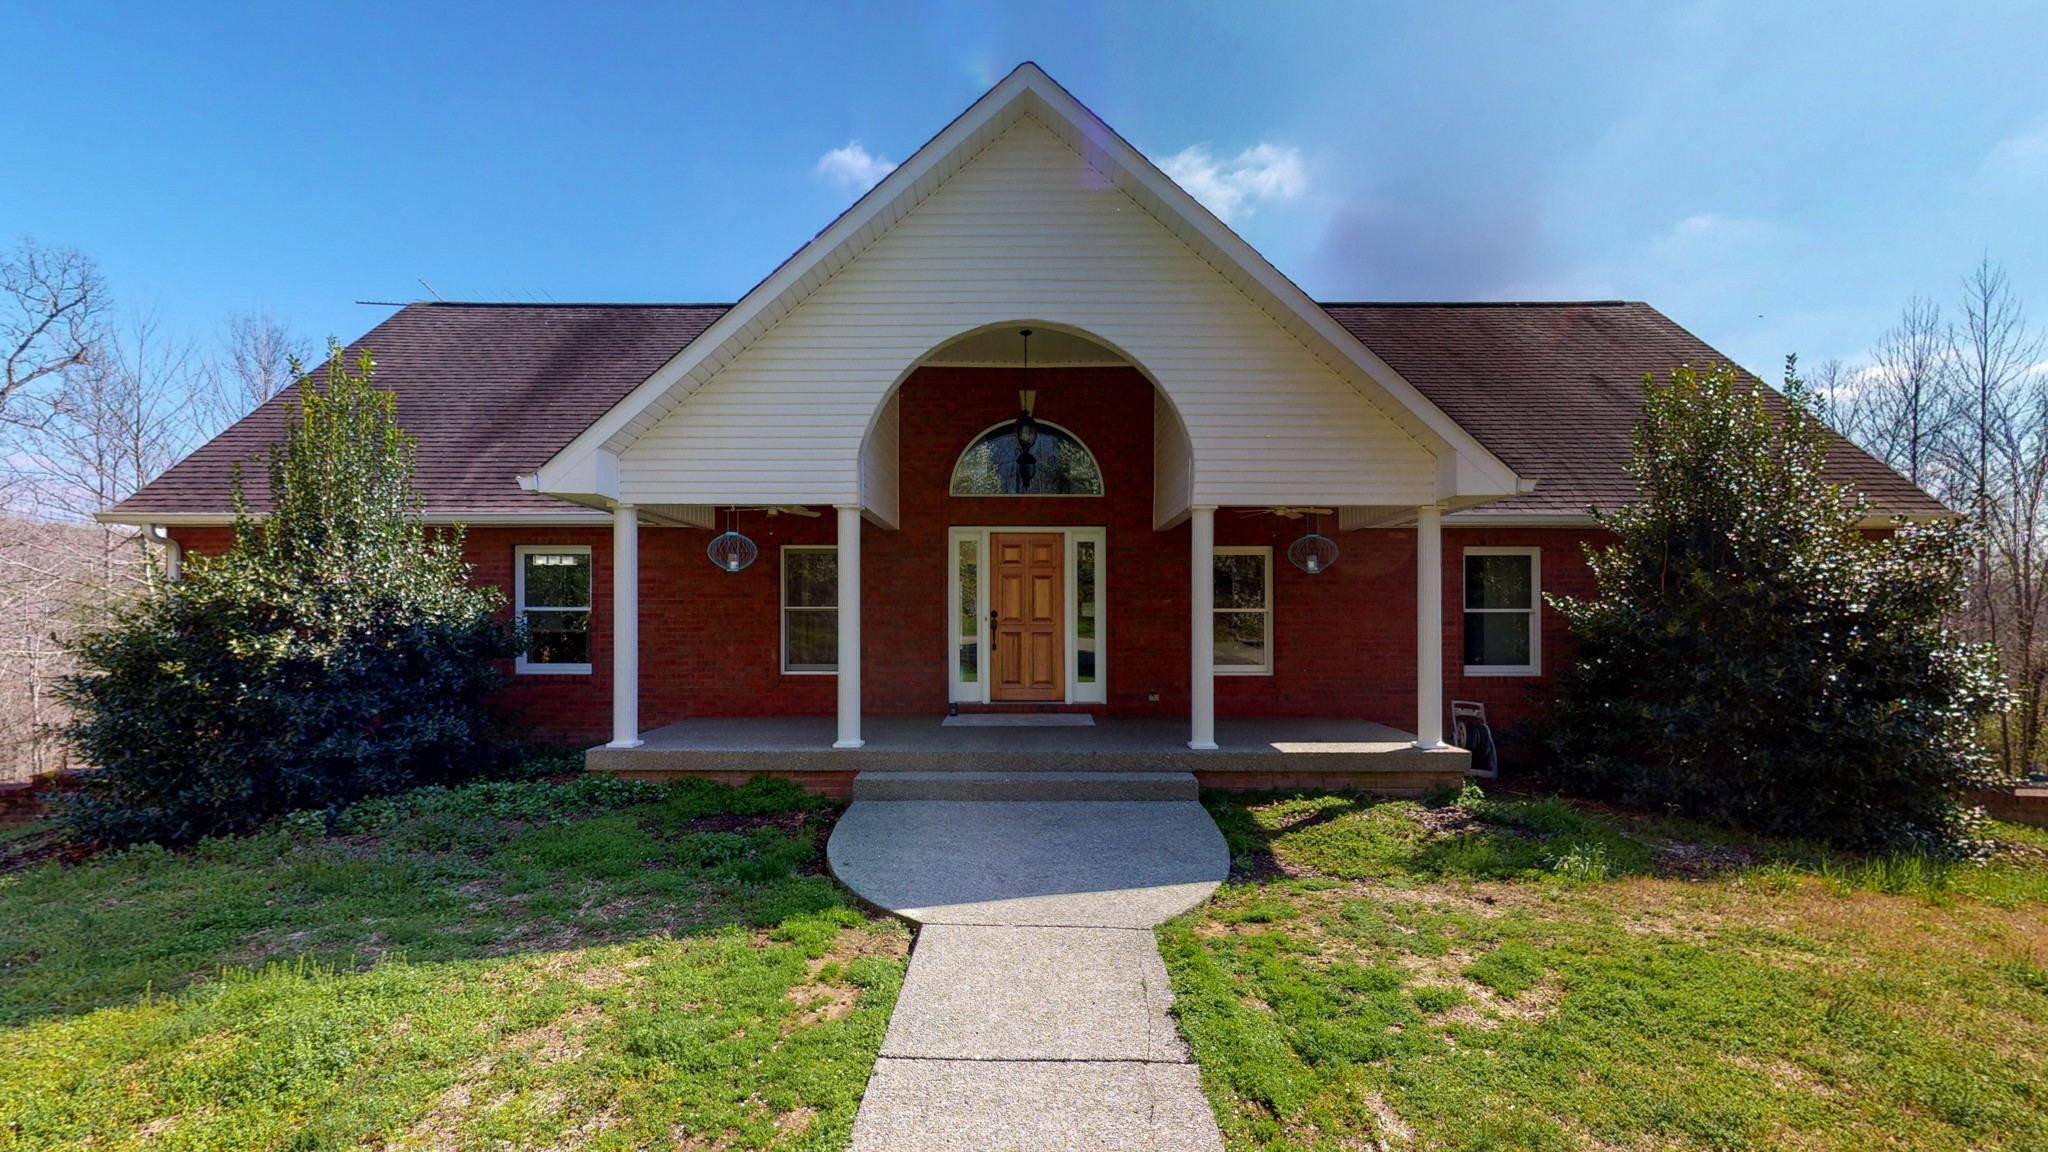 192 Sugar Hill Ln, Kingston Springs, TN 37082 - Kingston Springs, TN real estate listing